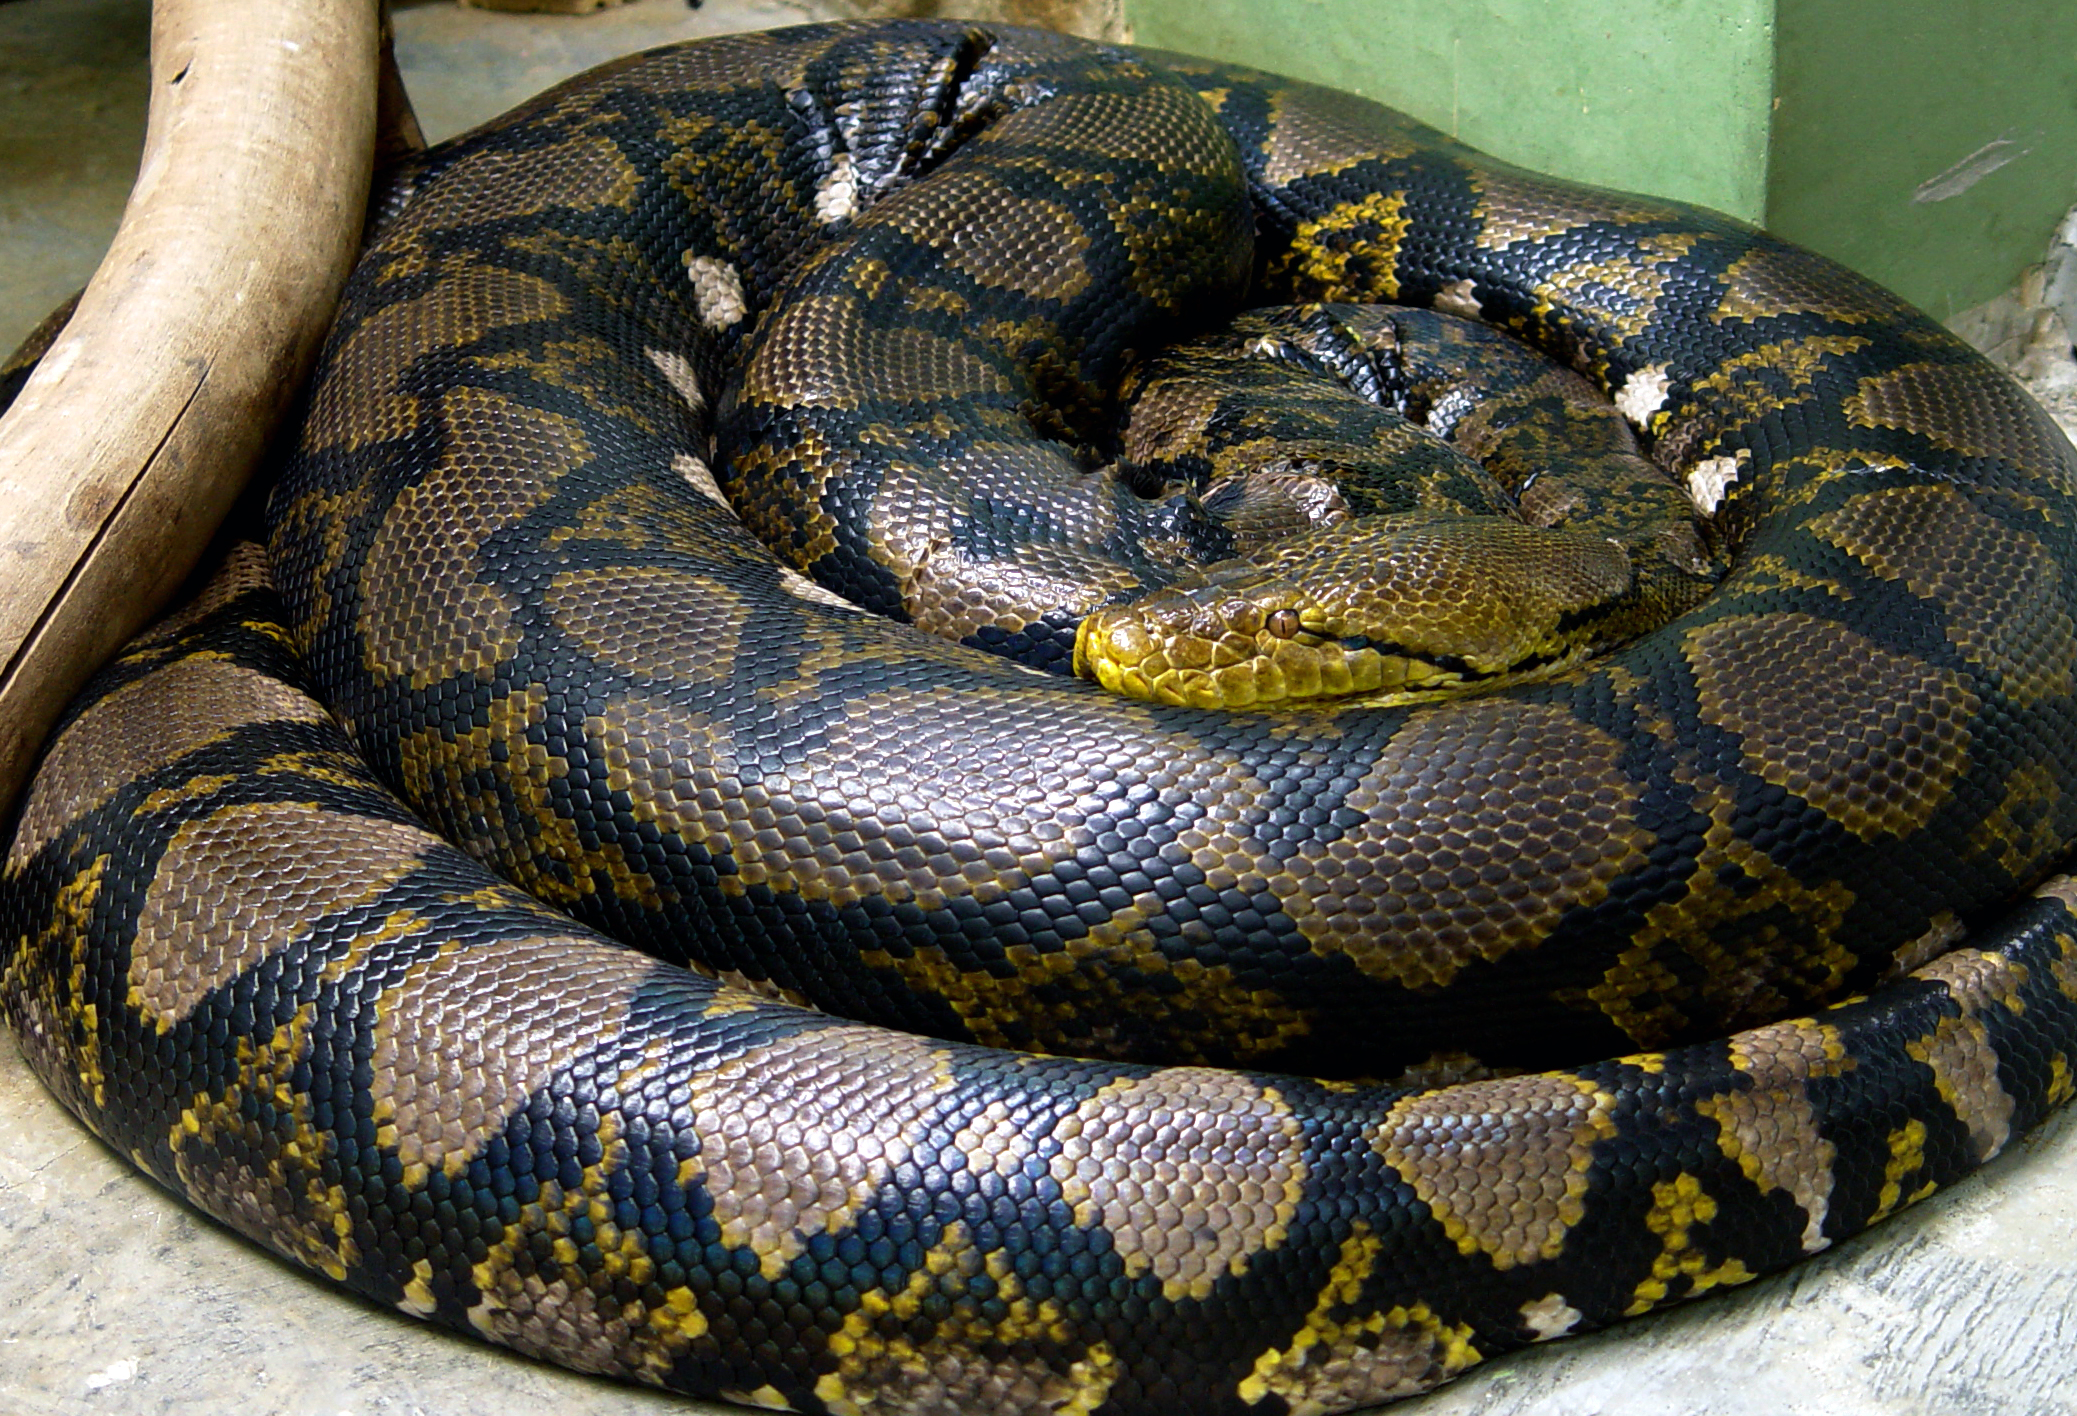 alfa img   showing gt normal reticulated python